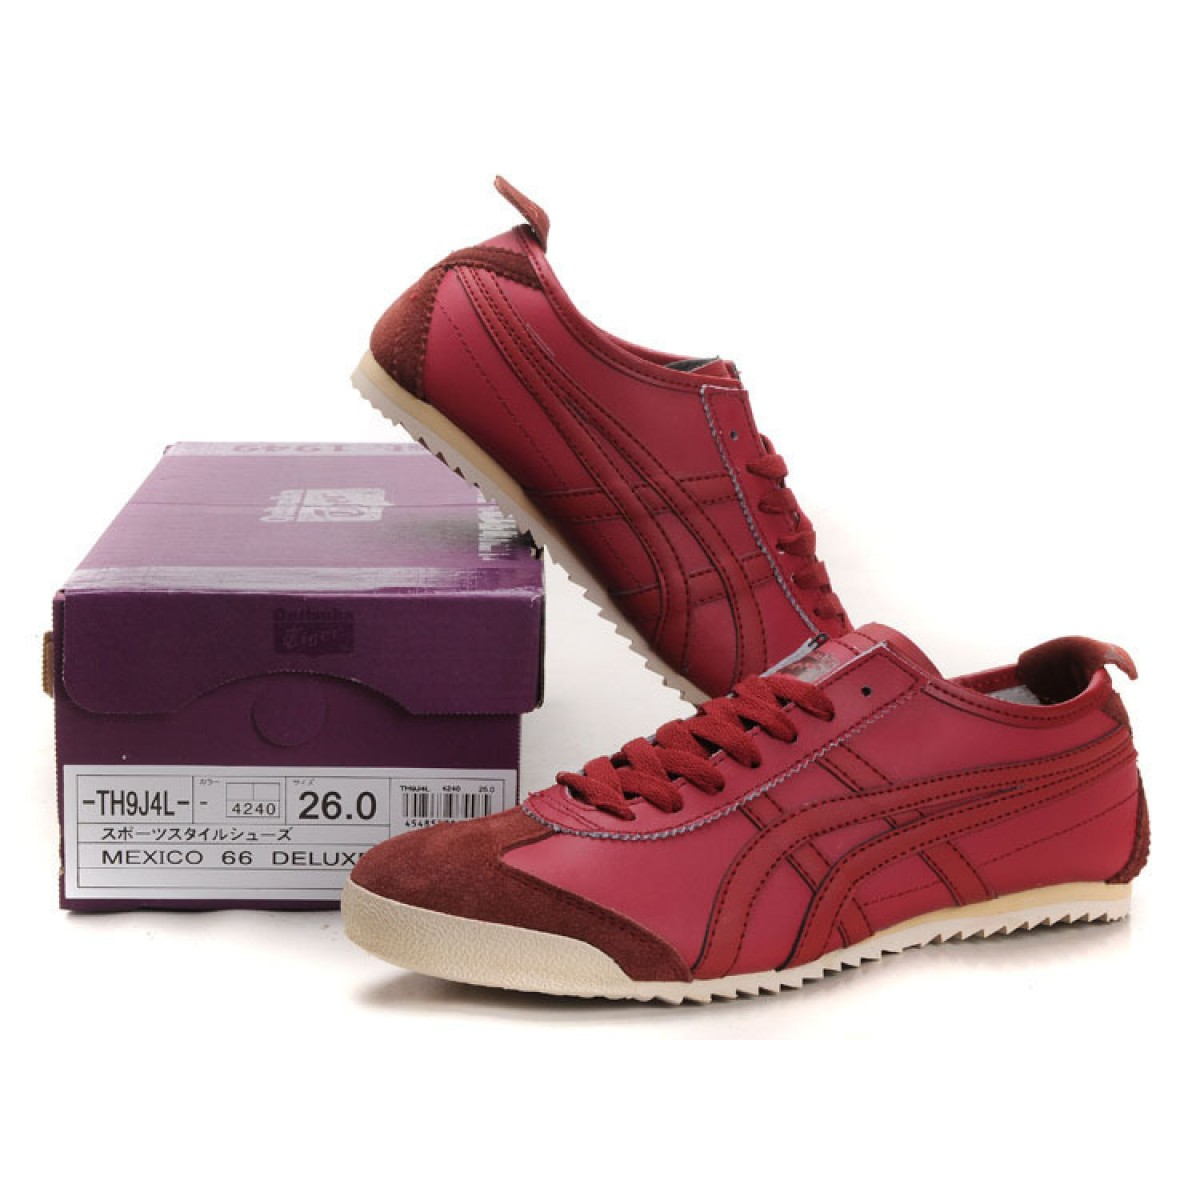 CH7482 Soldes Asics Mexico 66 Deluxe Hommes vin rouge 99952116 Pas Cher